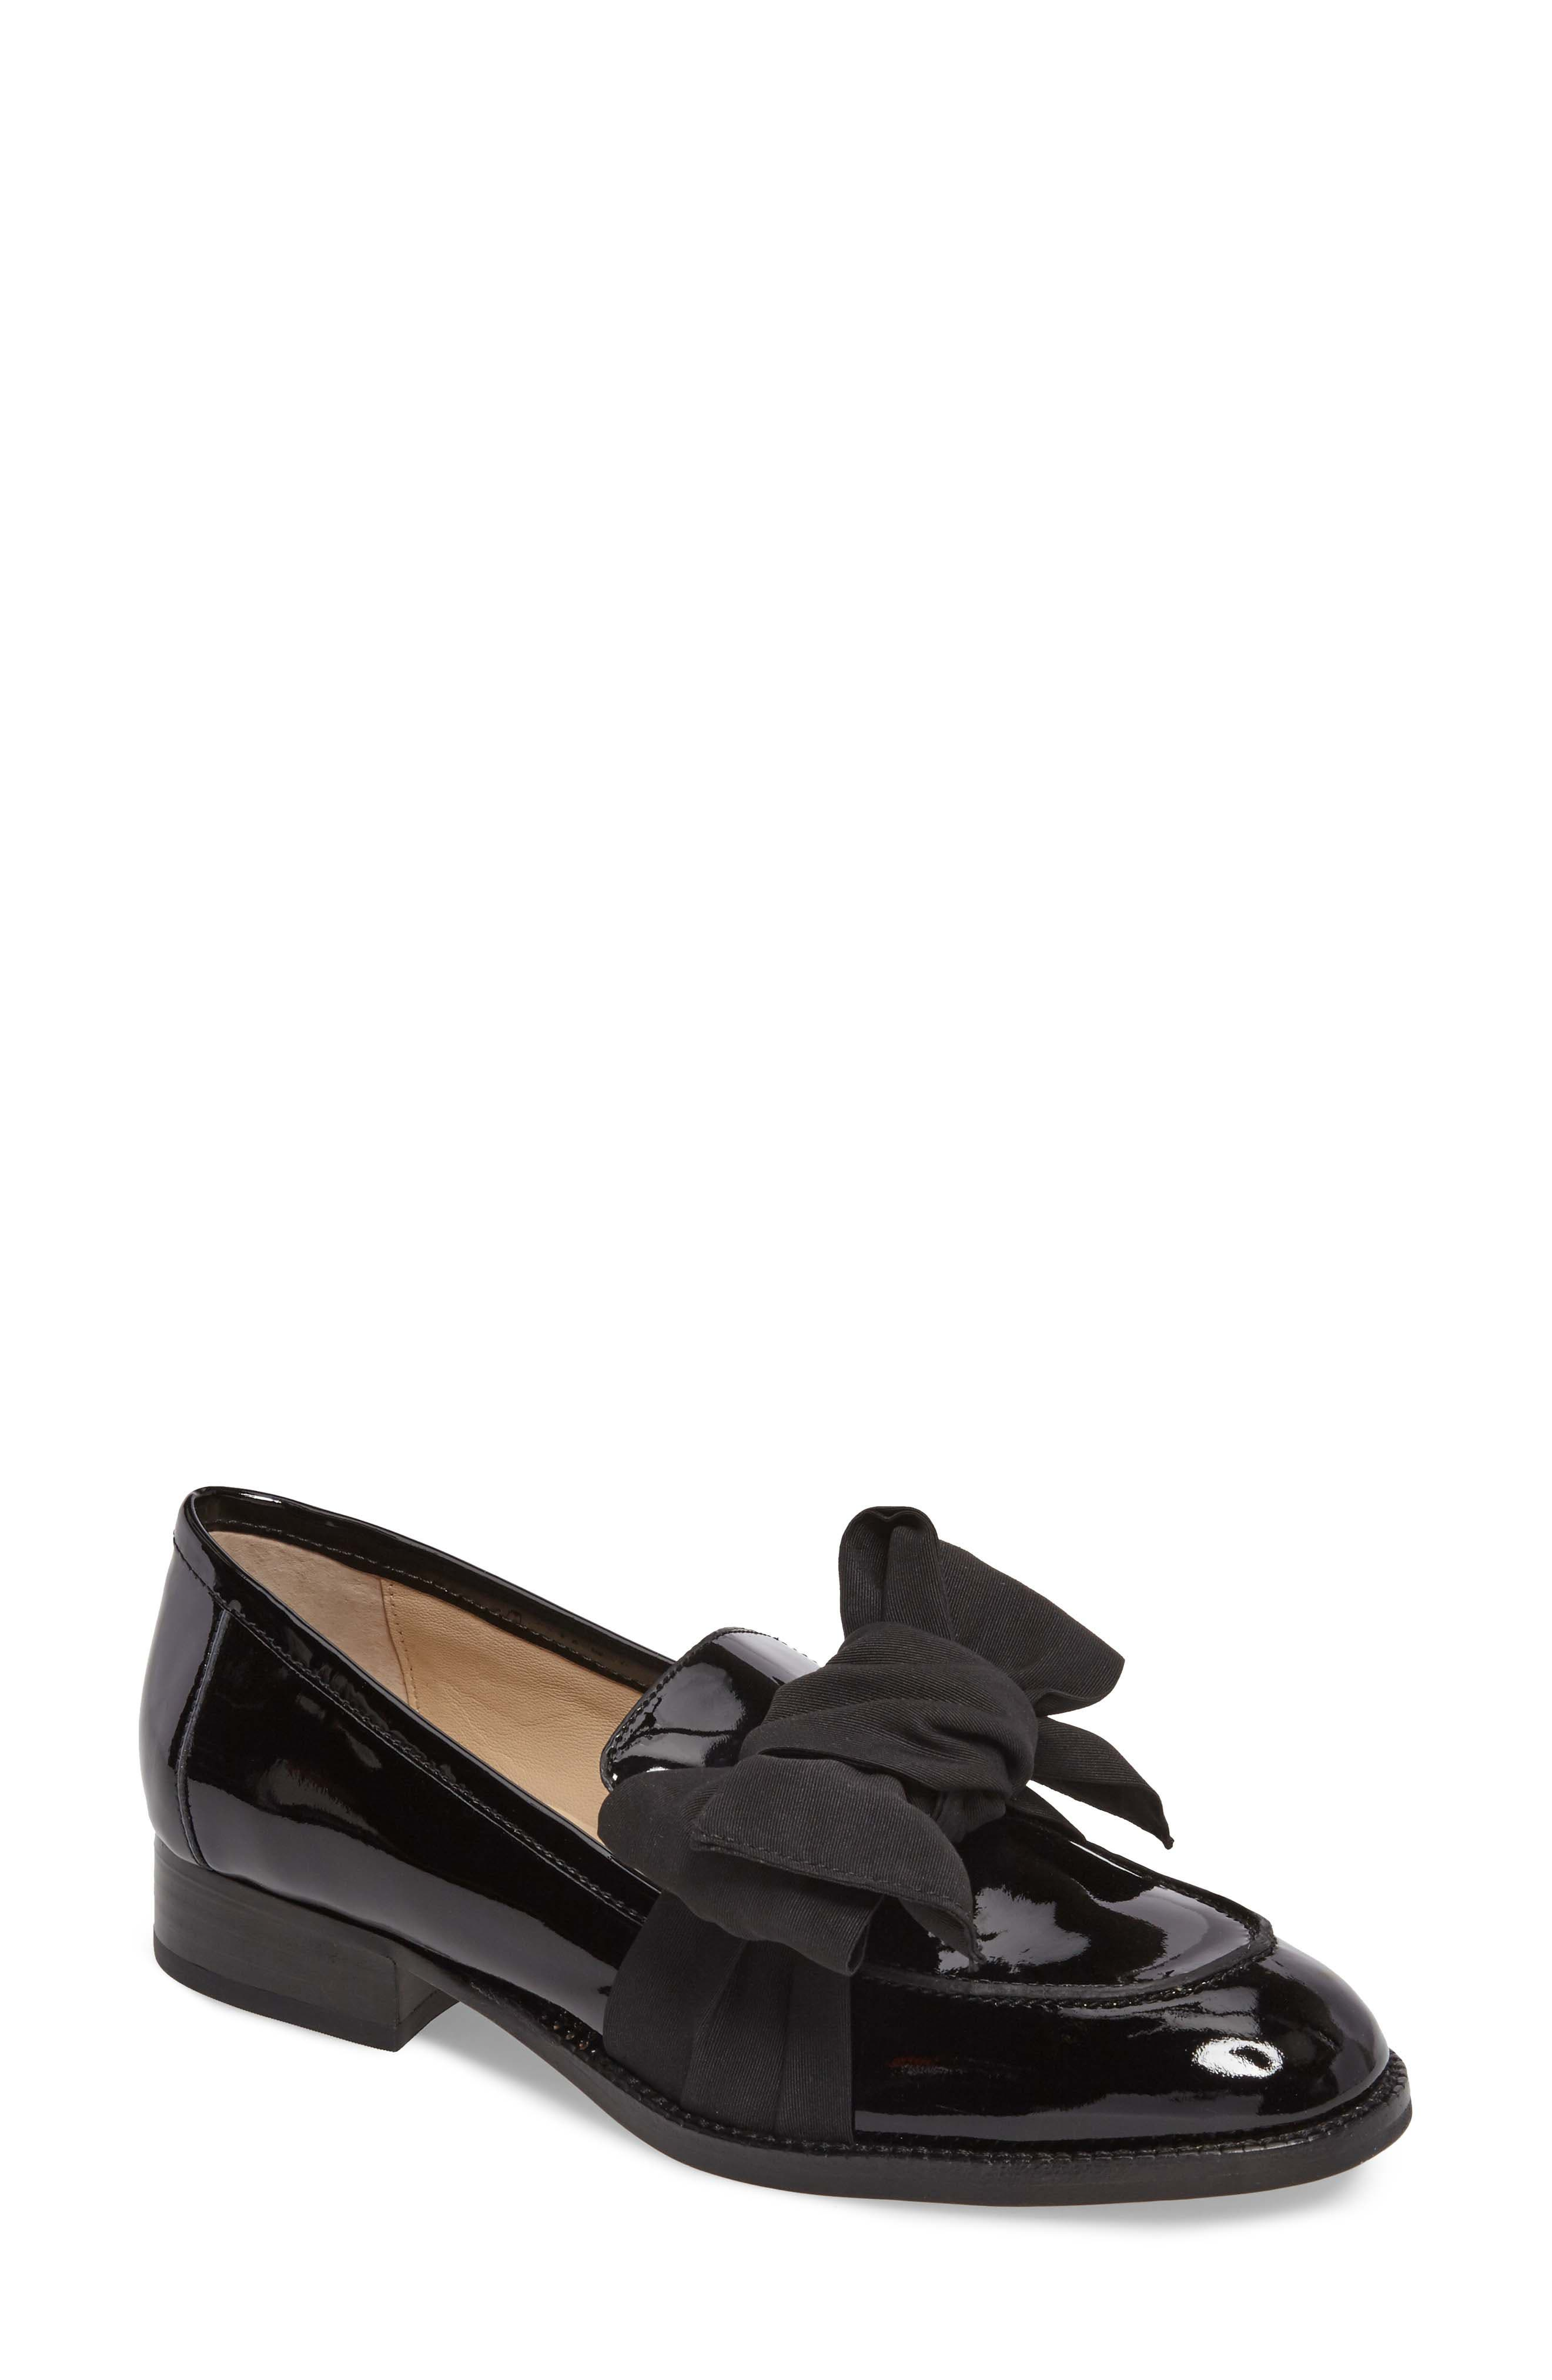 BOTKIER,                             Violet Bow Loafer,                             Main thumbnail 1, color,                             BLACK PATENT LEATHER